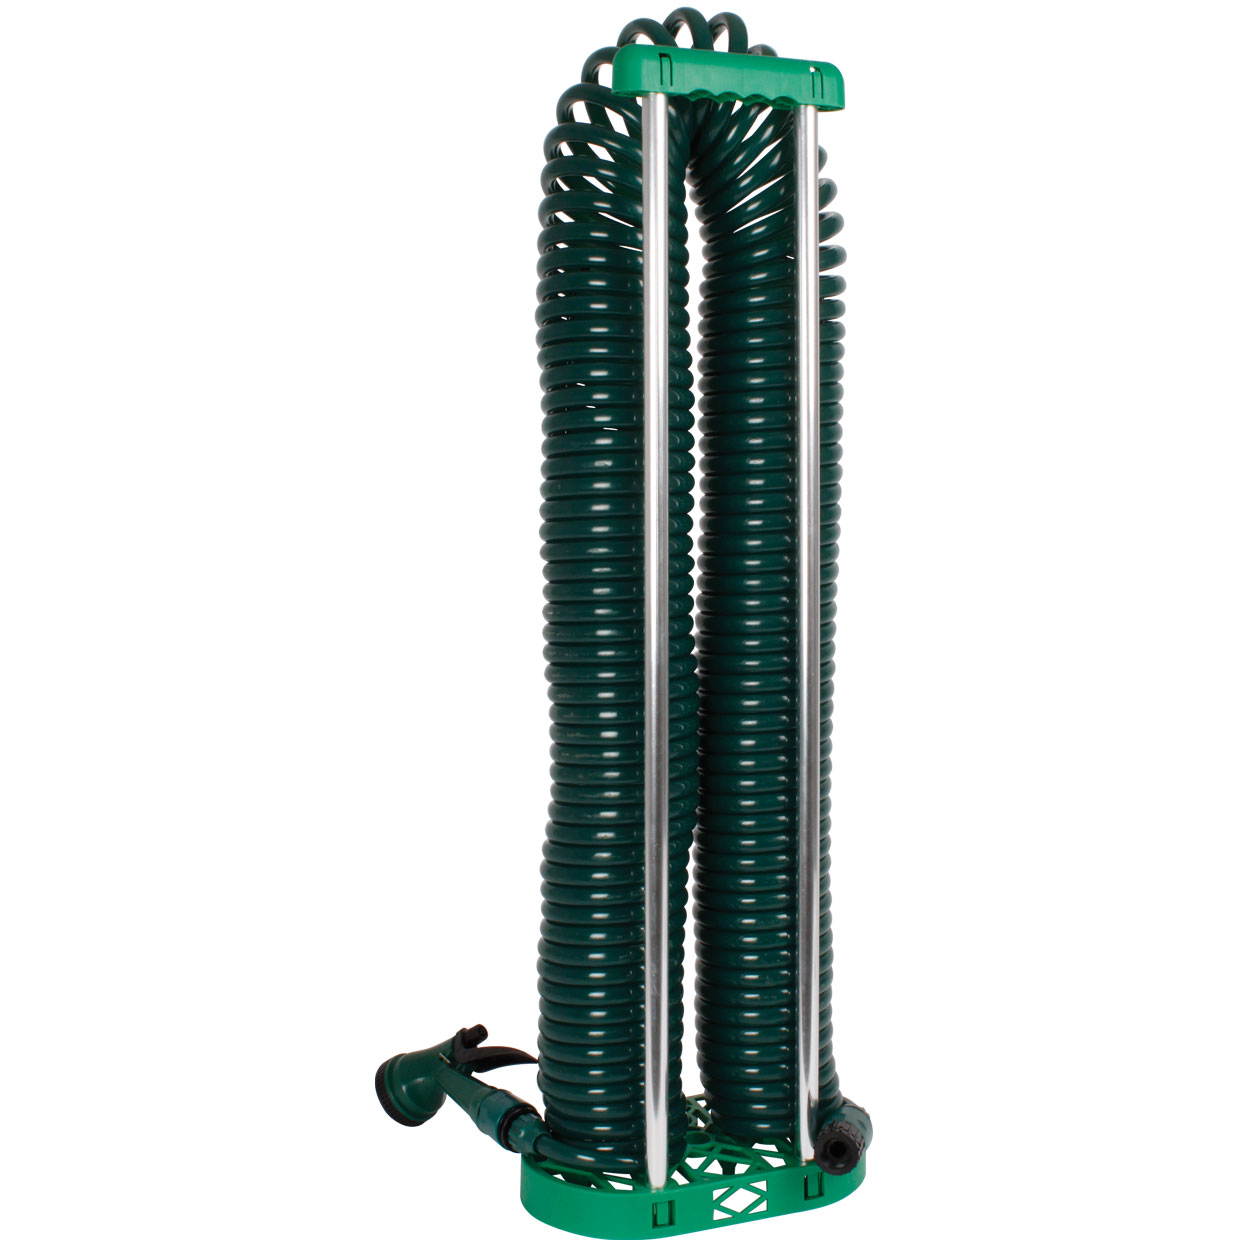 30M Recoil Hose Holder For 8051